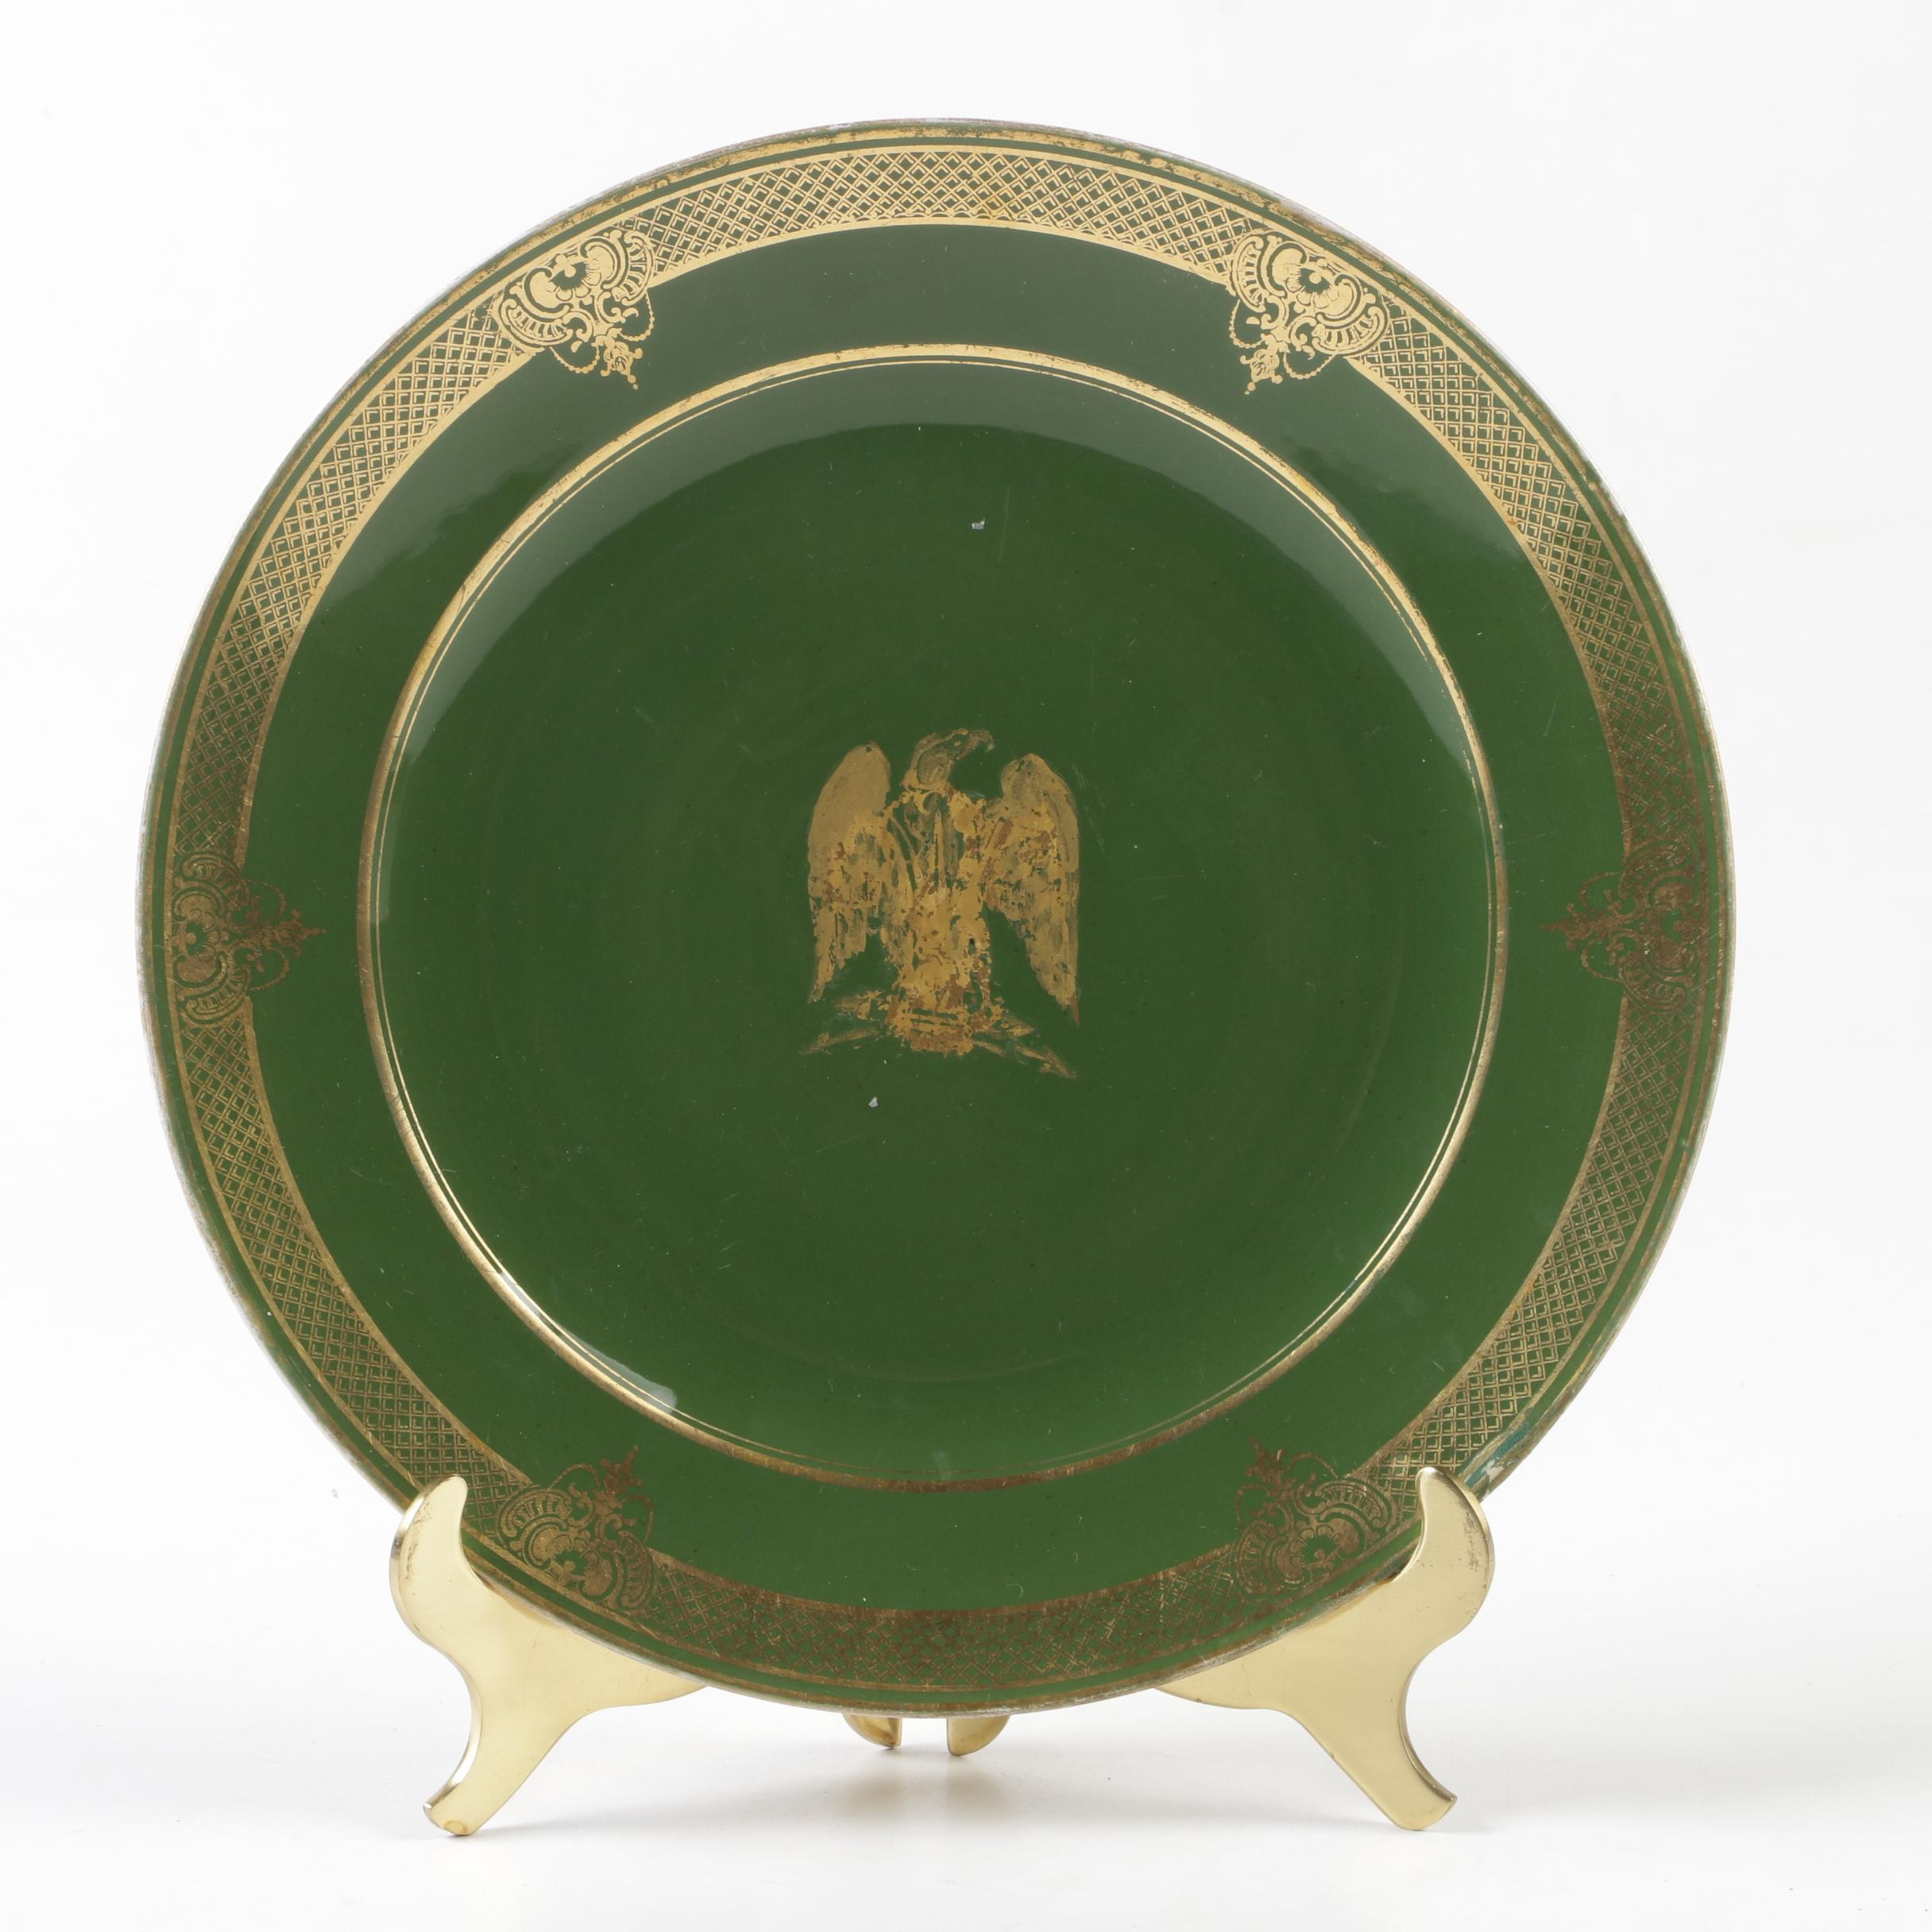 Sèvres Porcelain Plate with Brass Stand, Early 19th Century